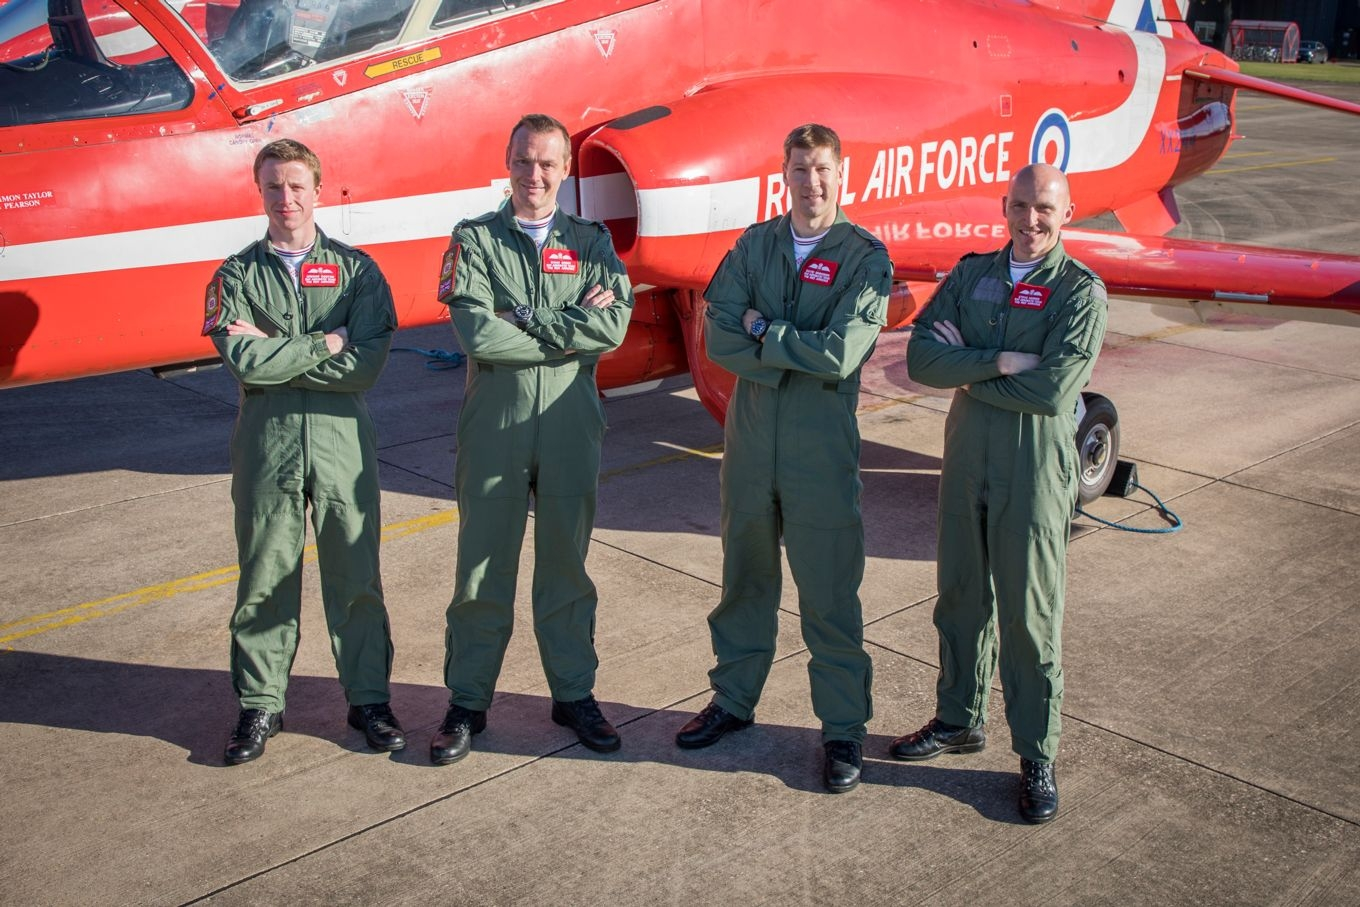 New pilots for 2019 (left-to-right): Flight Lieutenants Gregor Ogston, Damo Green and David Simmonds and Squadron Leader Steve Morris. Image by: SAC Rose Buchanan.